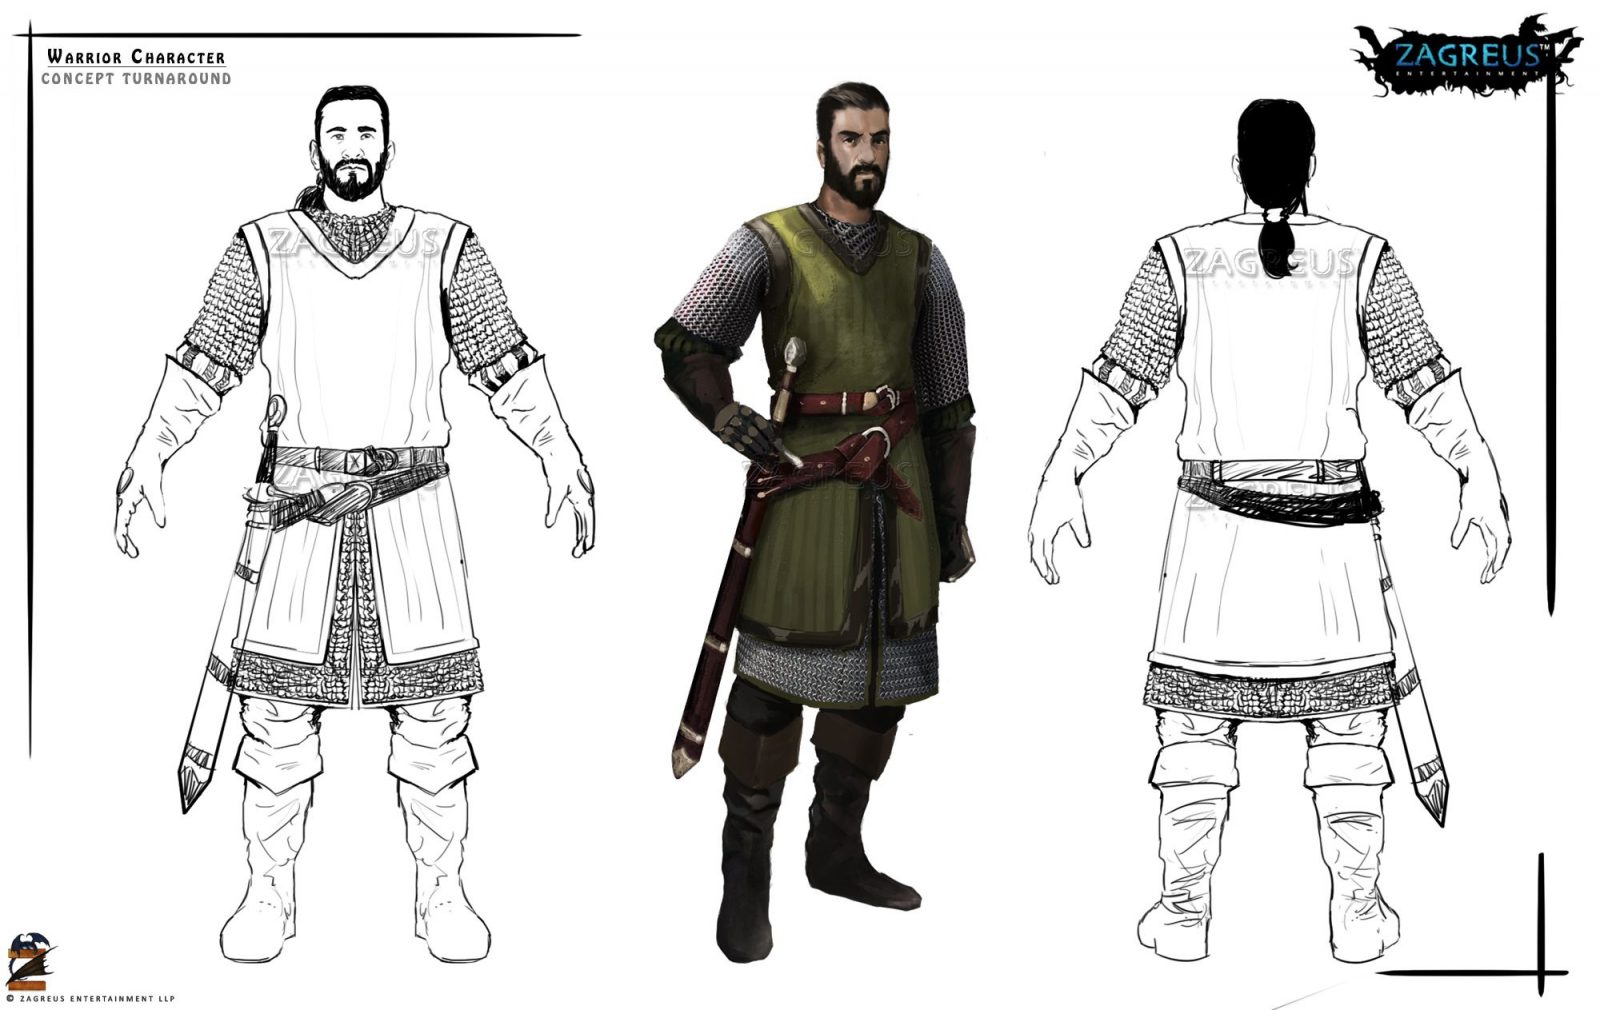 [Image: warrior_turnaround_ze.jpg]